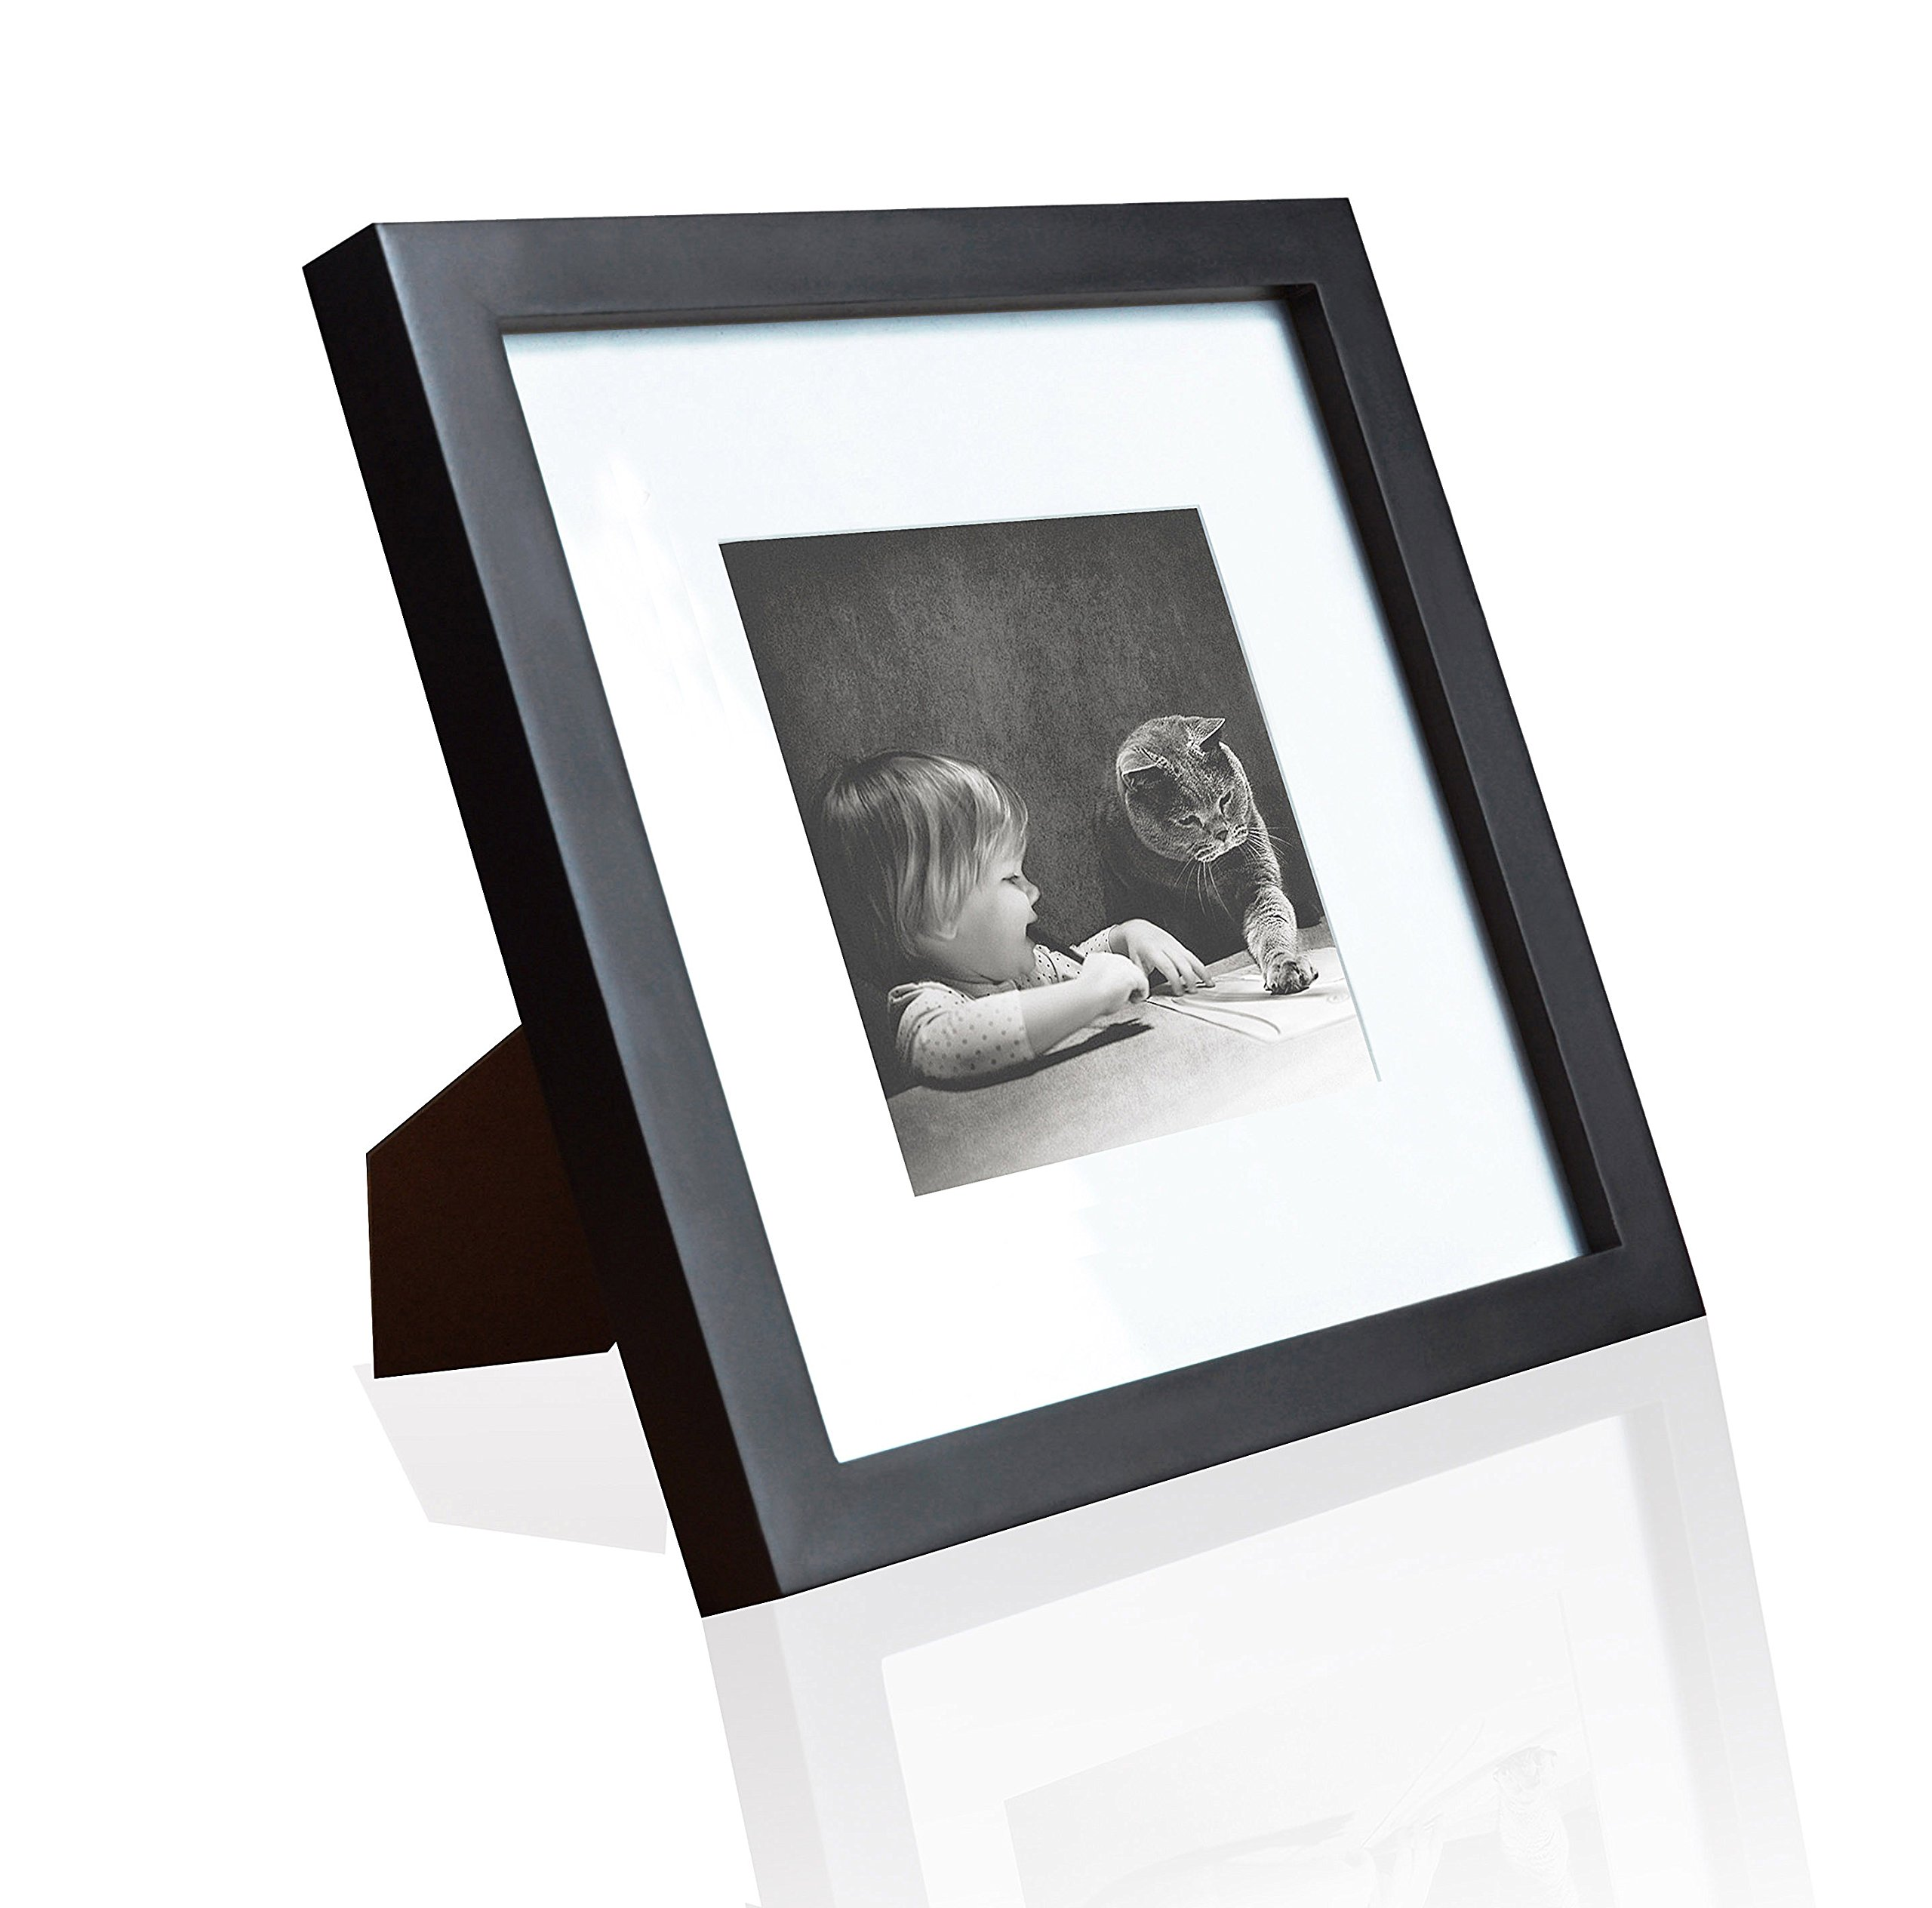 Ray & Chow 8x8 Square Black Picture Frame - Solid Wood - Glass Window - with Picture Mat for 4x4 Photo - Frame Width 2cm